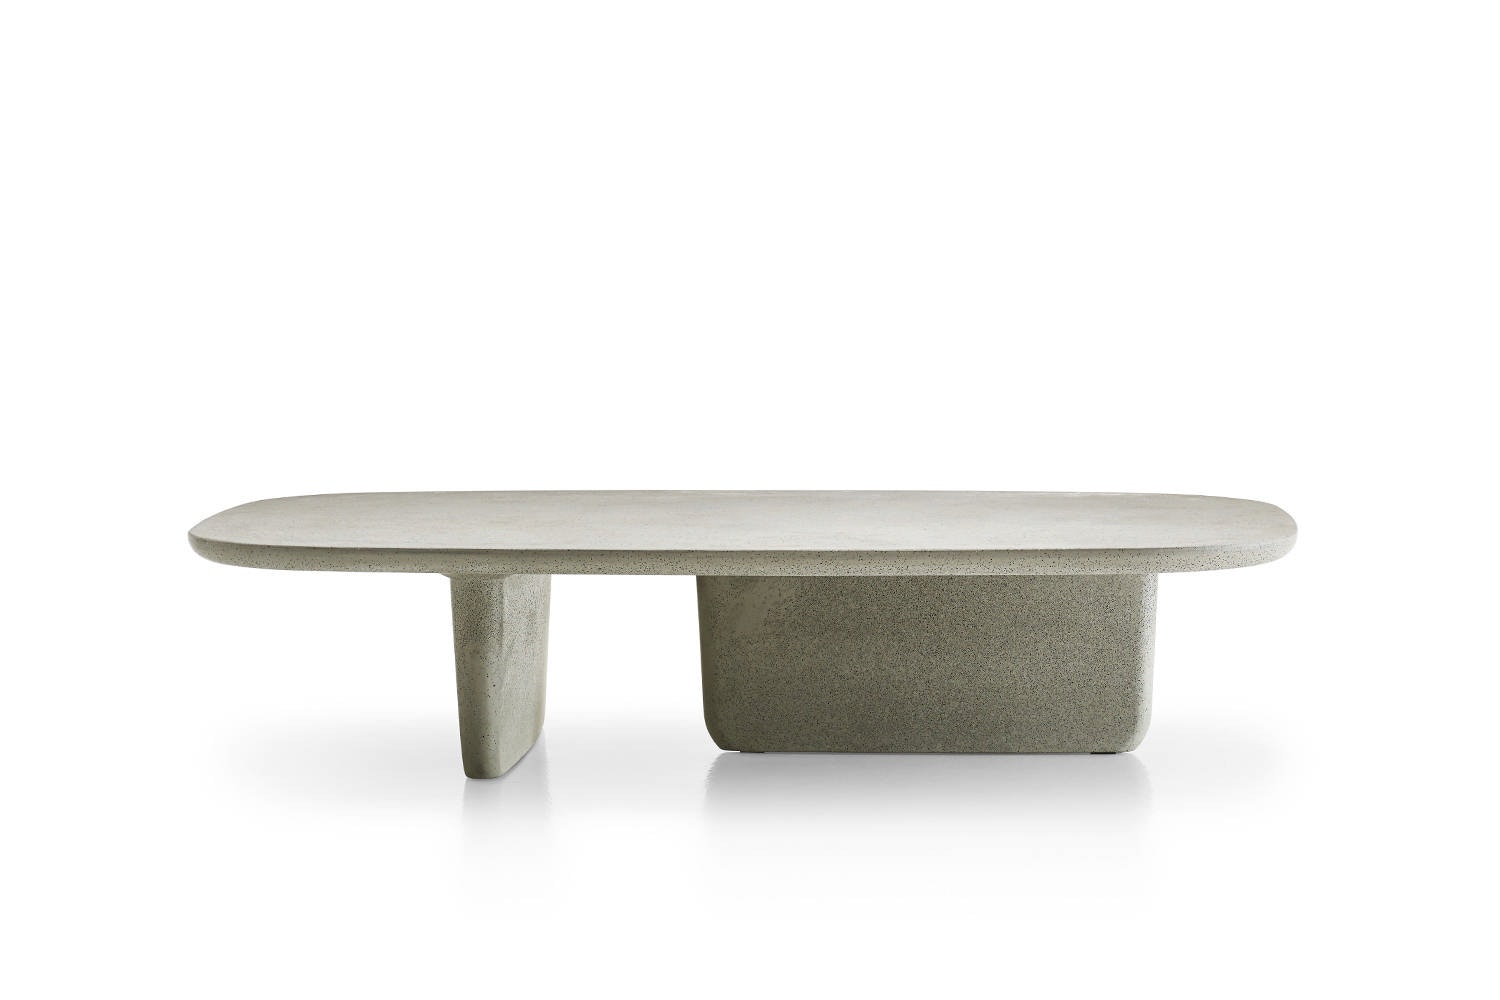 Tobi-Ishi Outdoor Coffee Table by Edward Barber & Jay Osgerby